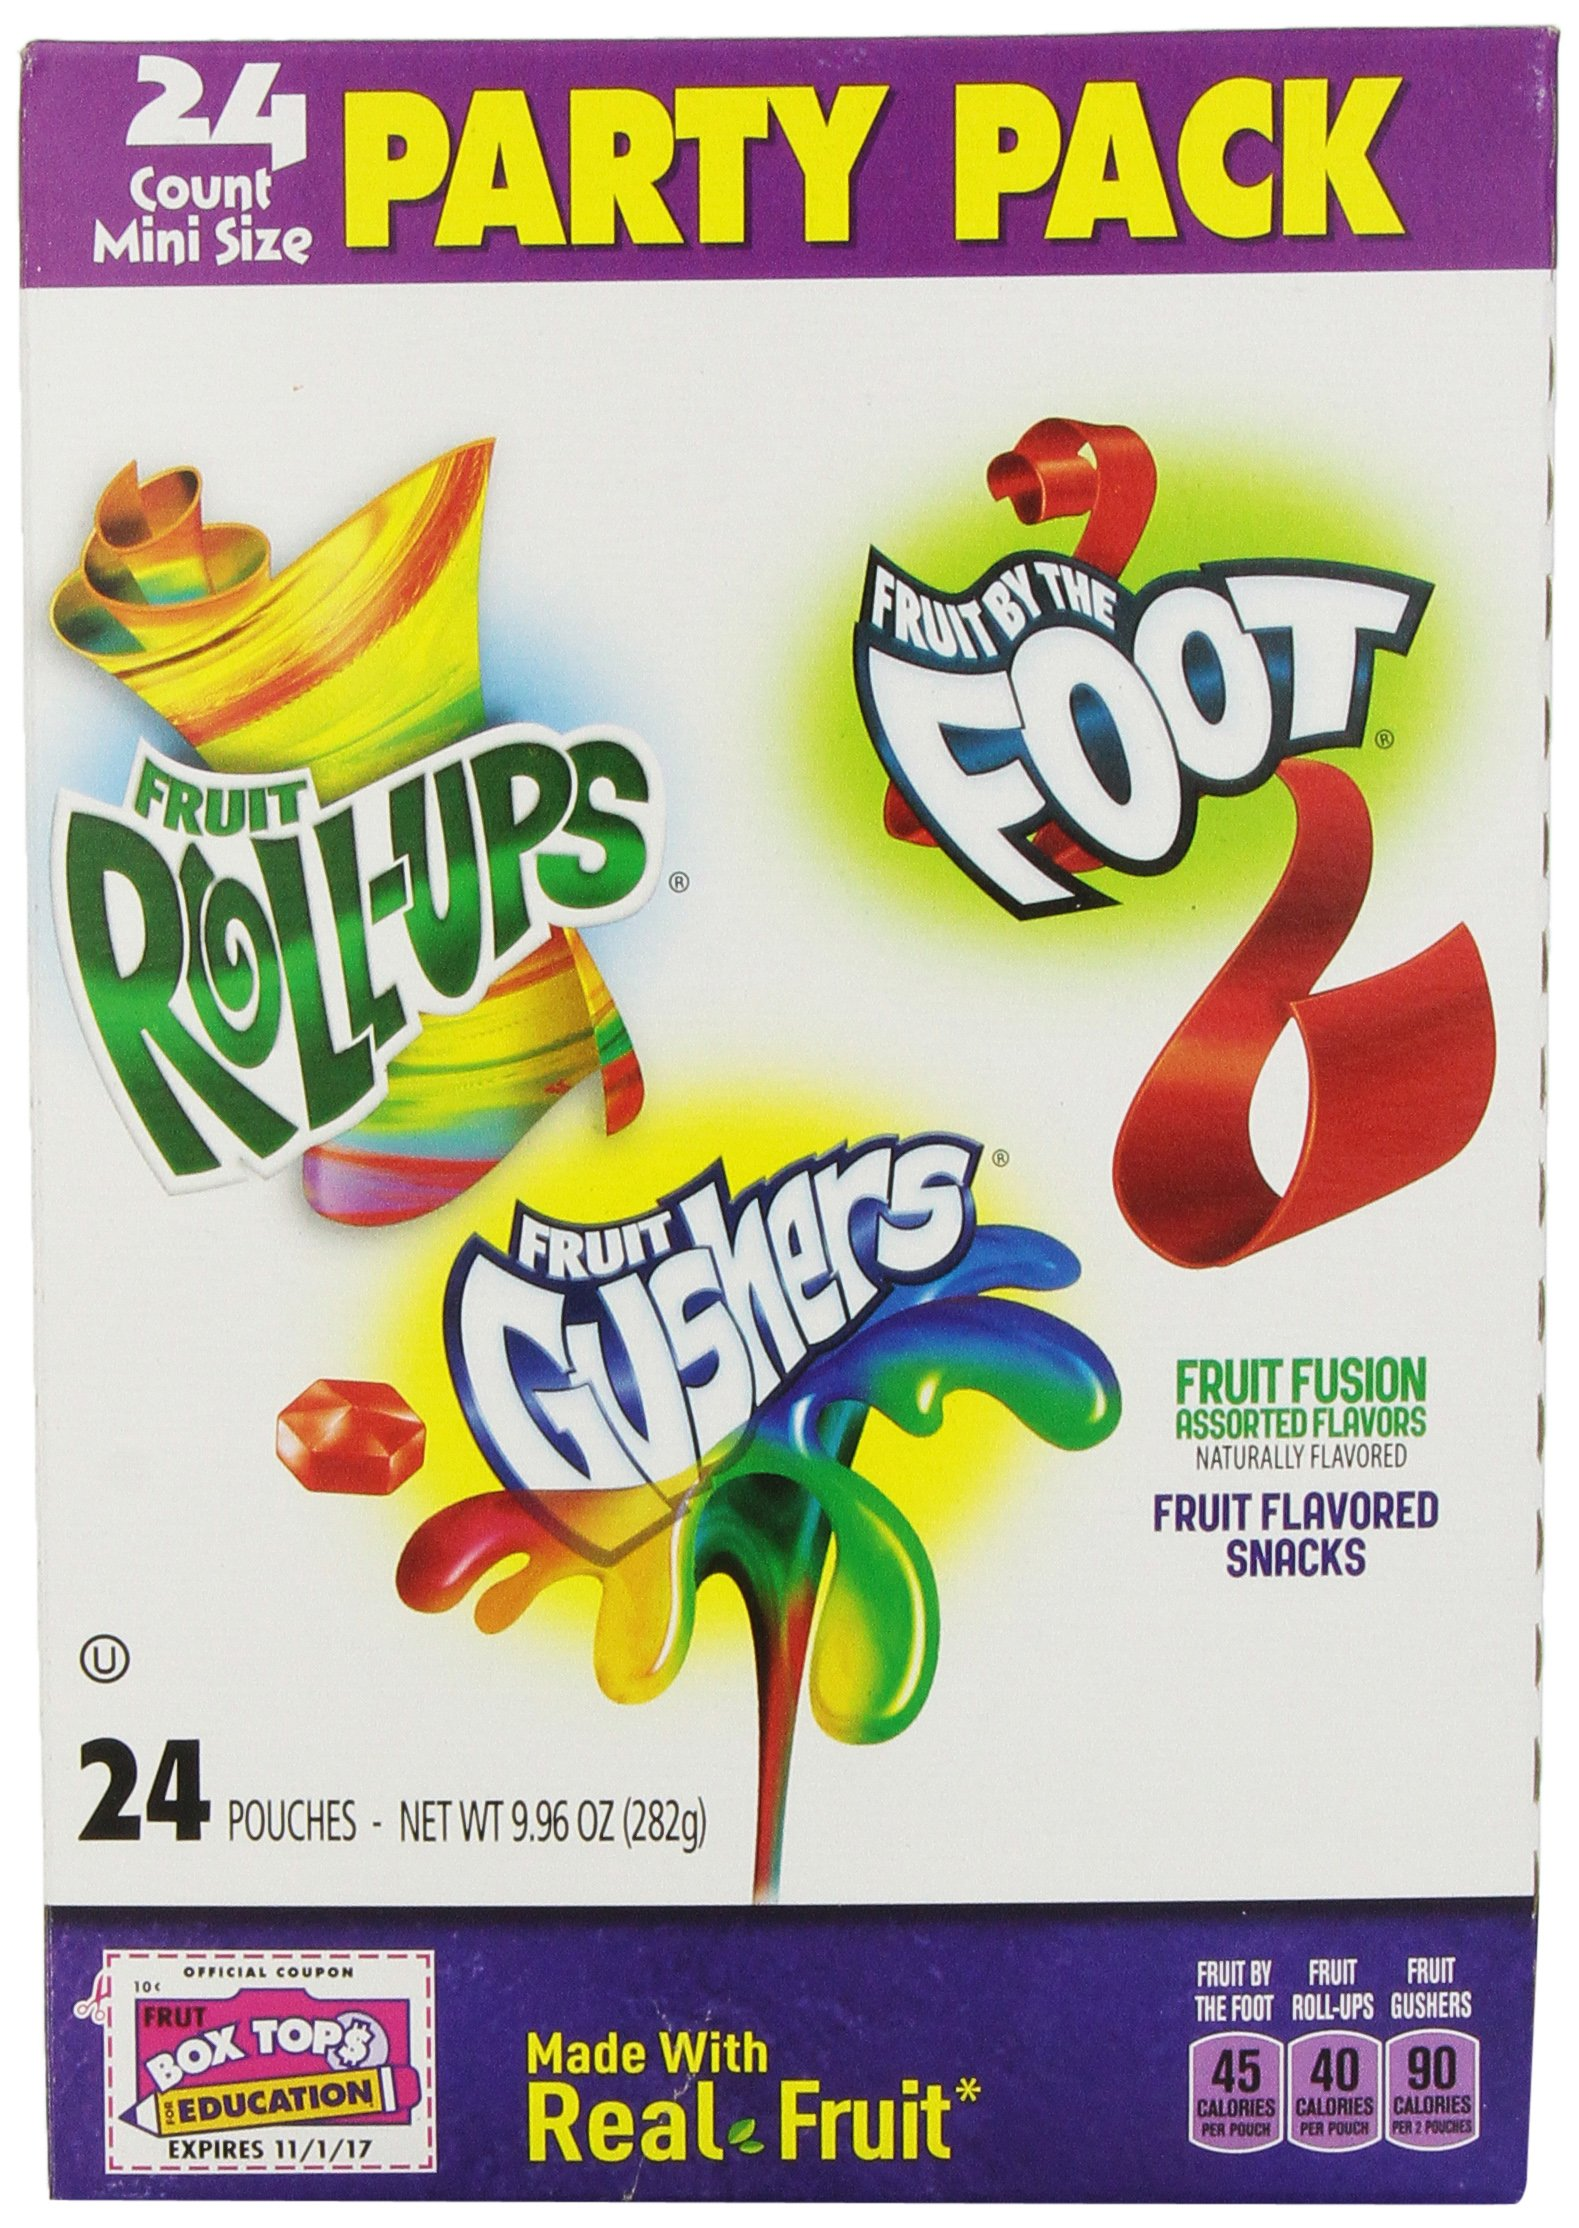 General Mills Party Pack, Fruit Fusion Assorted Flavors, 24 count, 9.96 oz, (Pack of 3) by Fruit Shapes